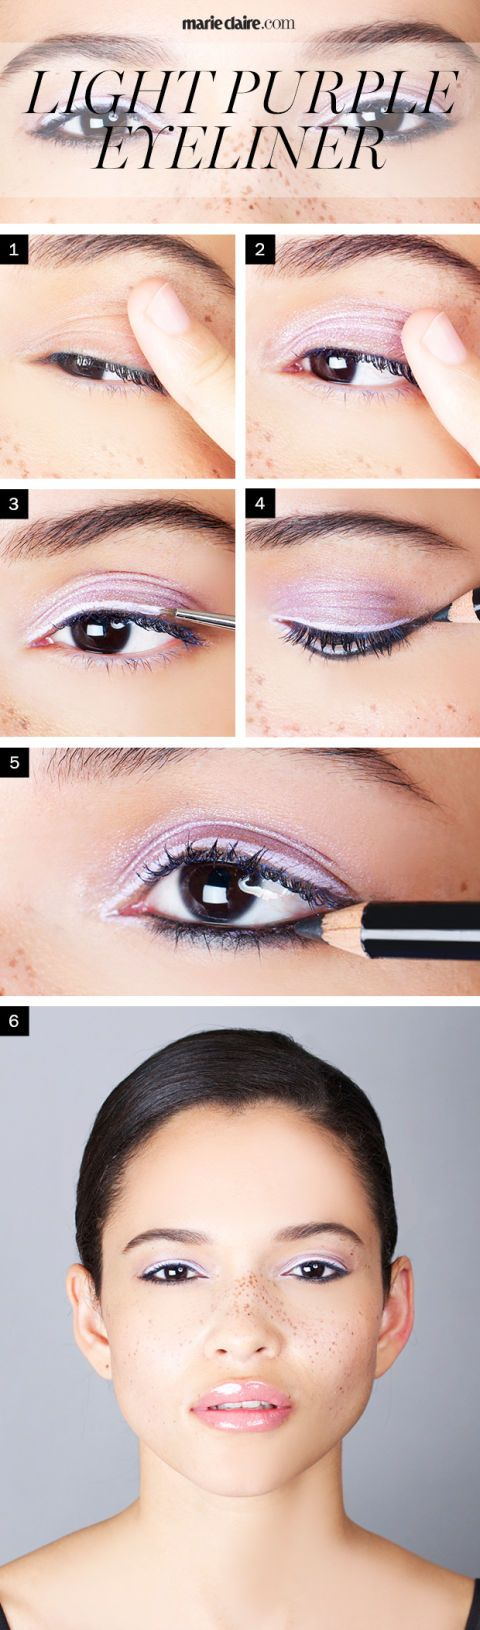 Makeup How To Wear Light Purple Eyeliner For Brown Eyes